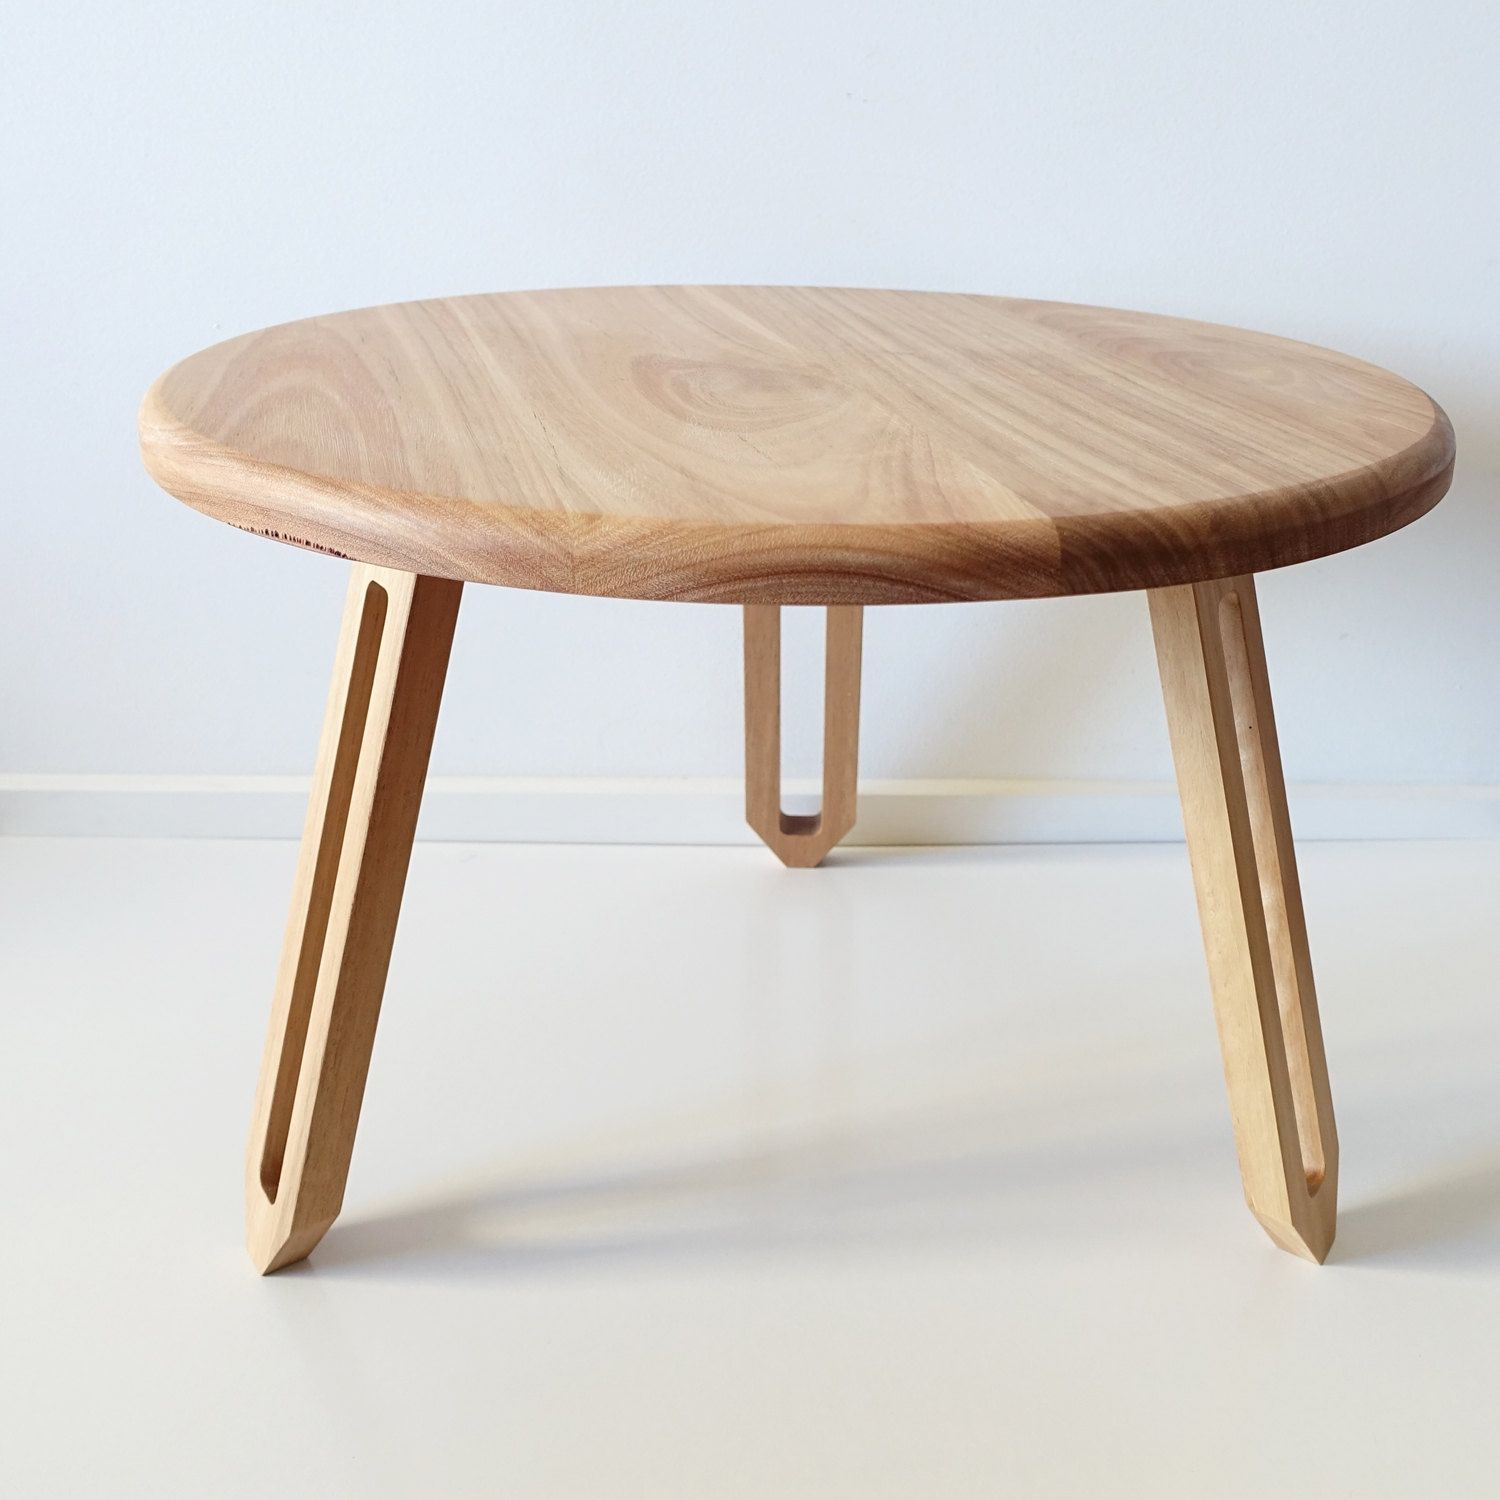 Furniture Low Round Wood Coffe Table With Folding Legs For Small And Narrow Living Es Ideas Coffee